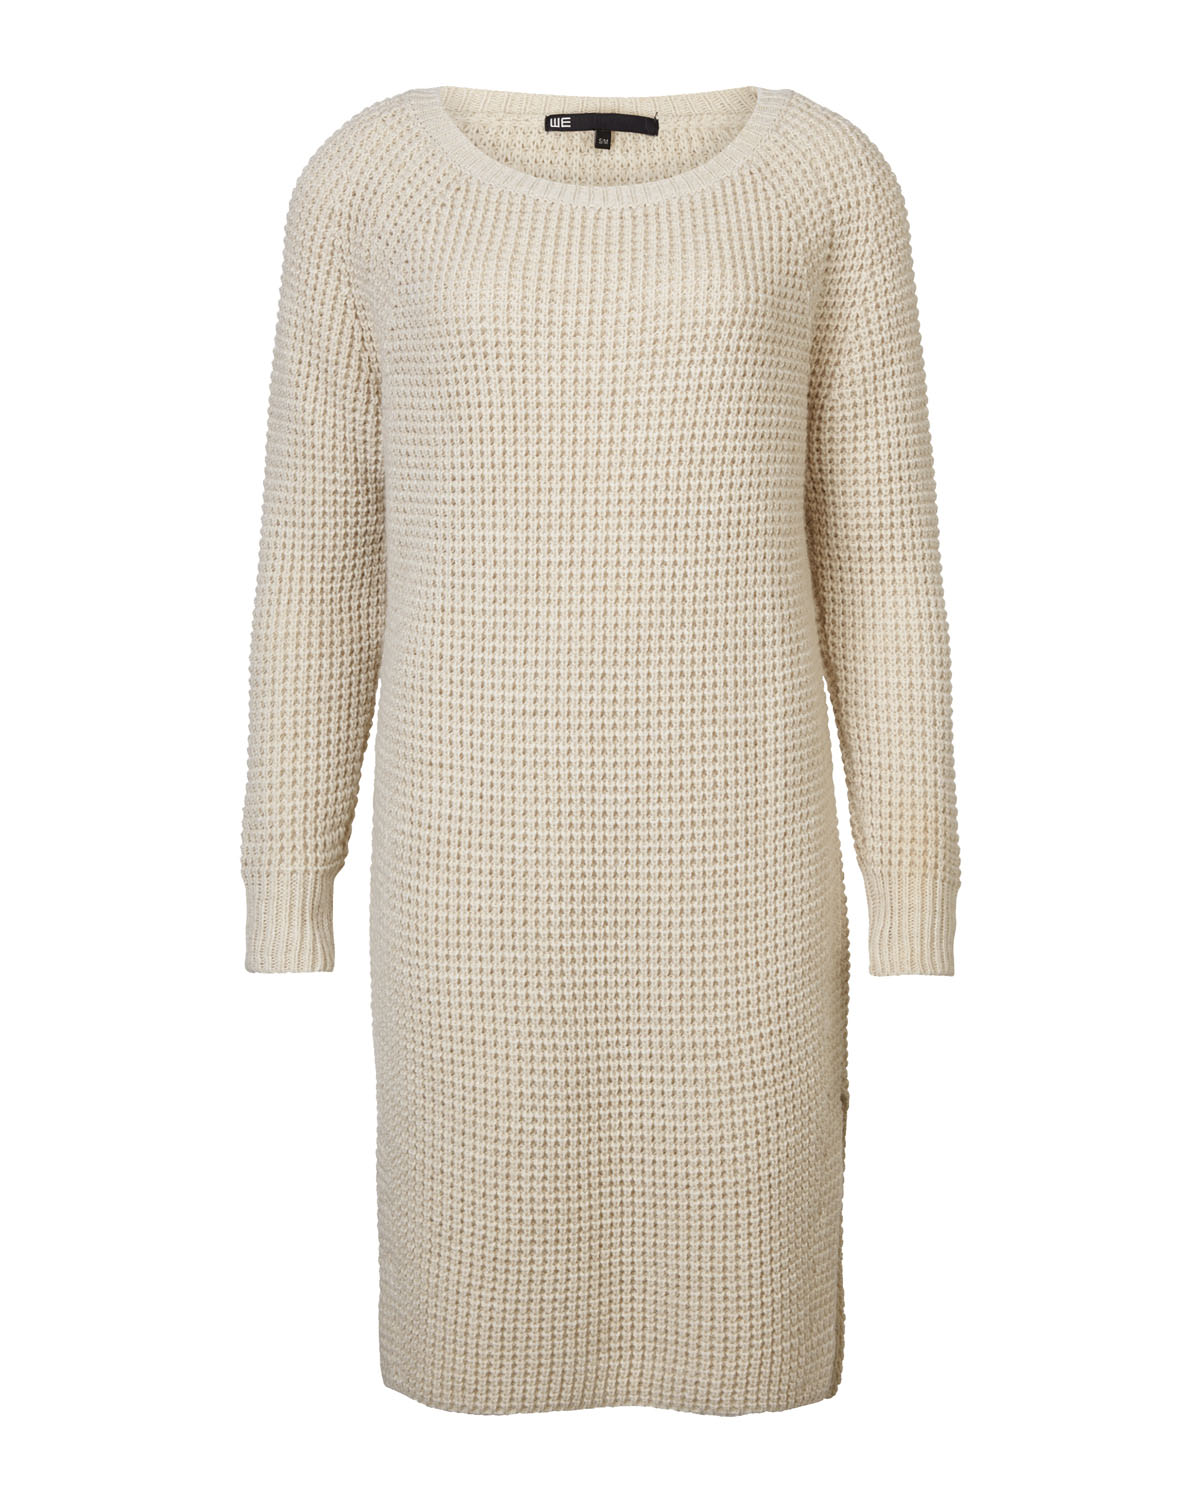 Jurk Trui.Dames Oversized Knit Jurk 79094115 We Fashion